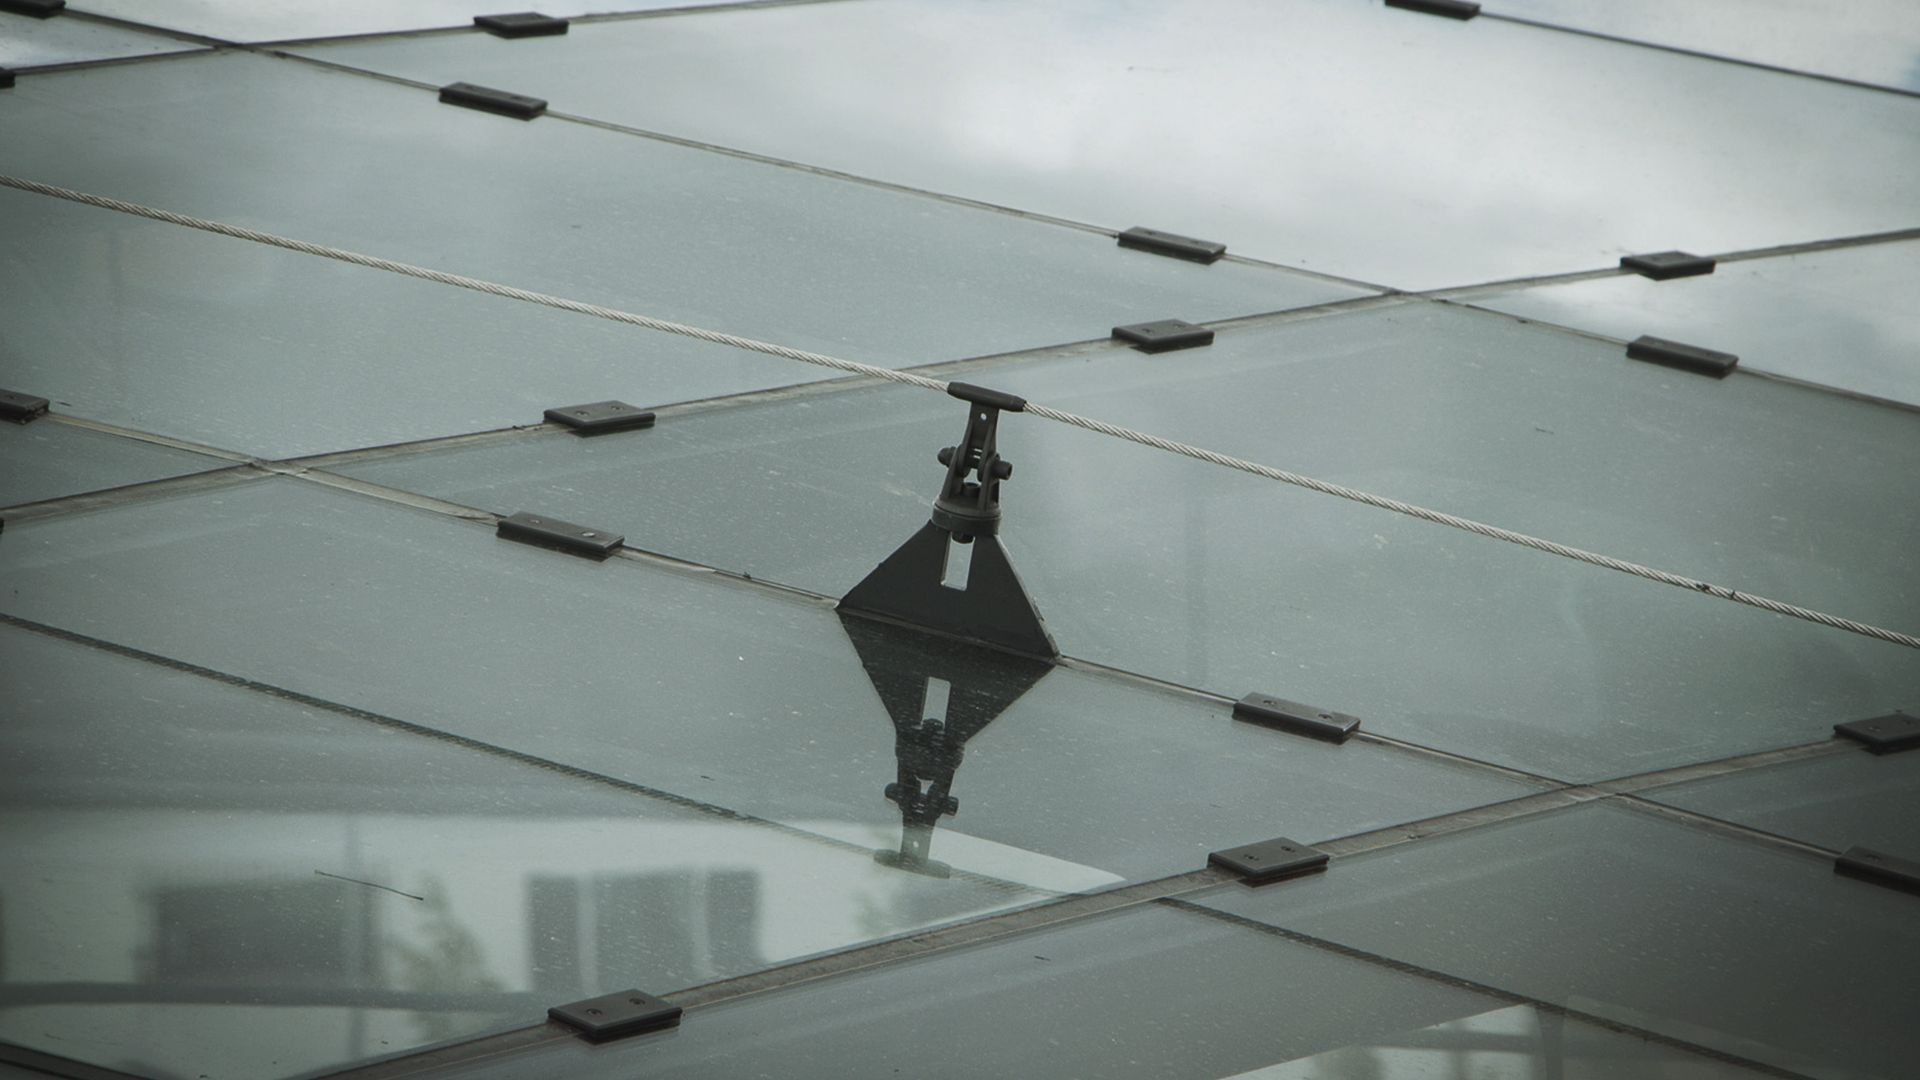 Securope on glass roof